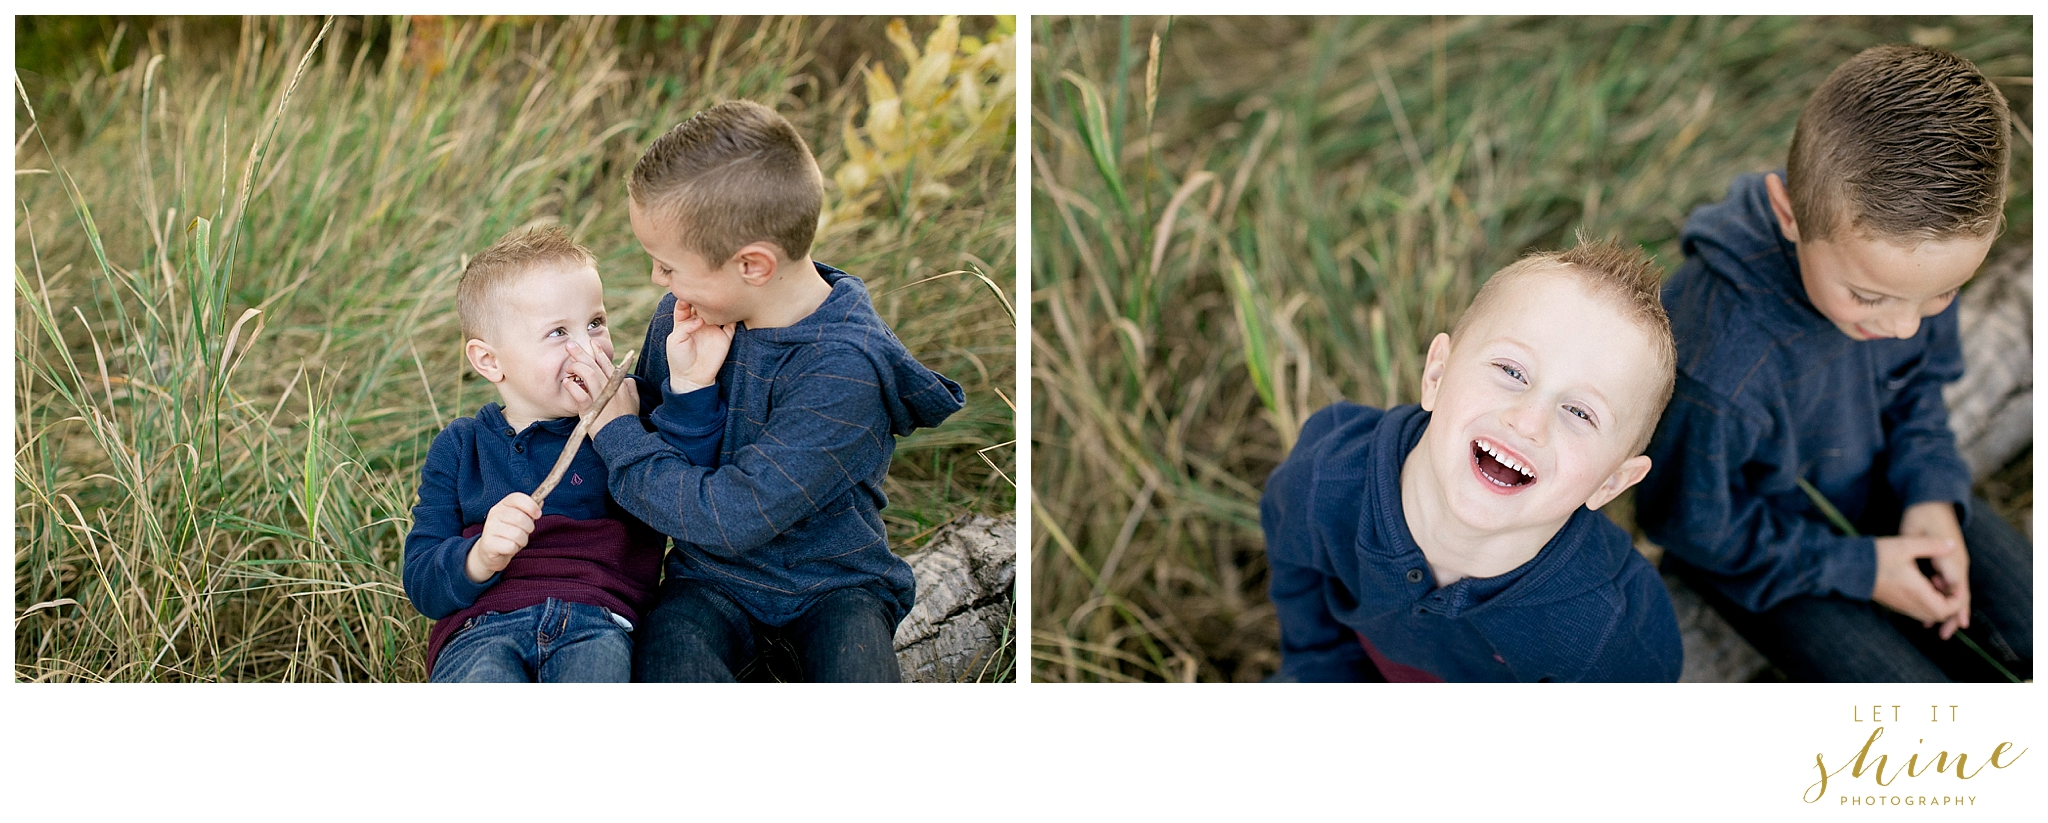 Boise Fall Family Photographer-9163.jpg